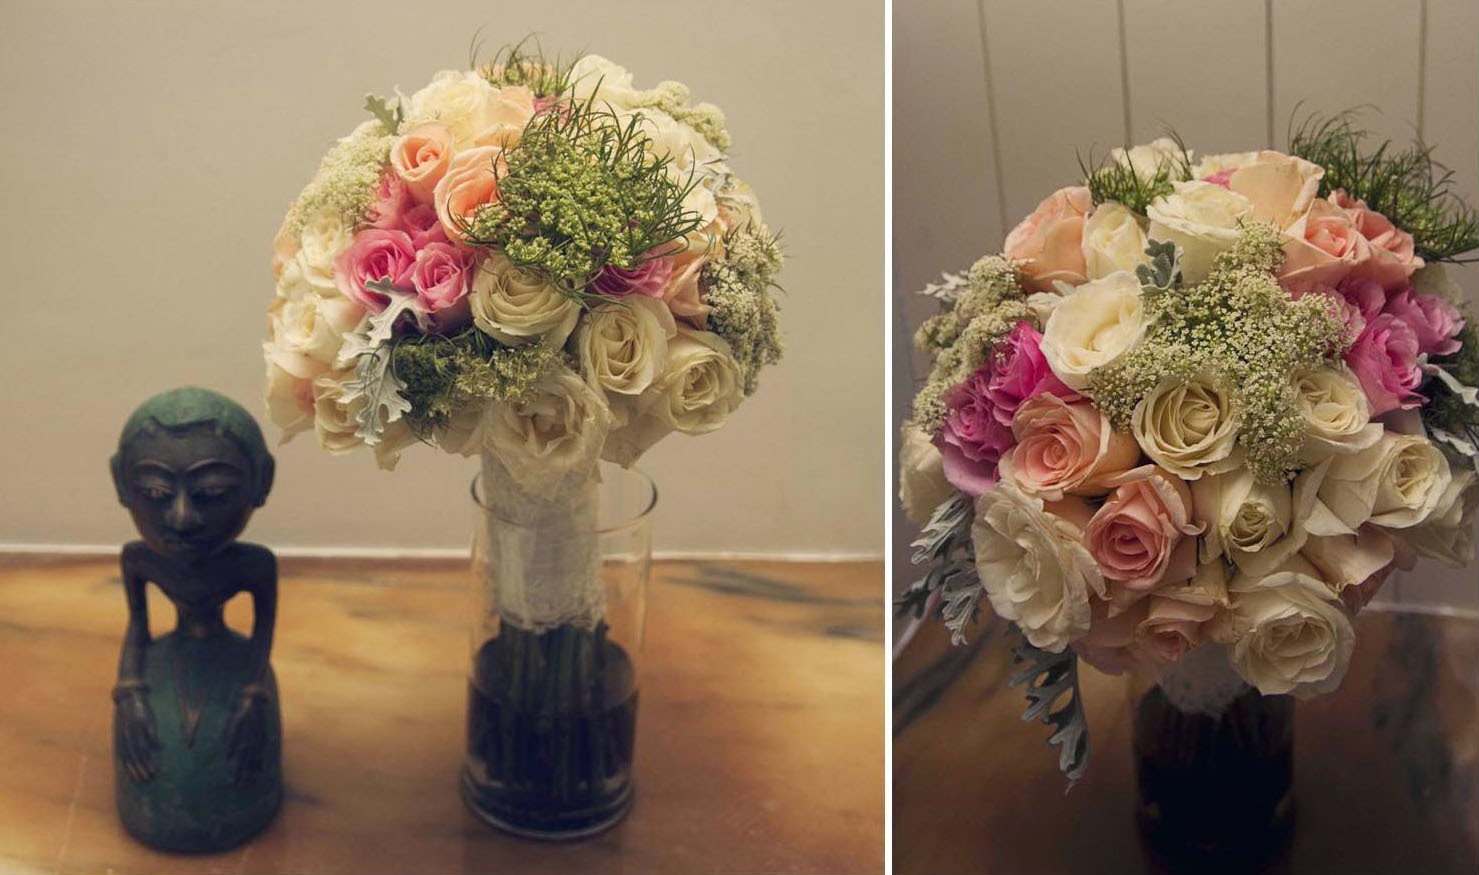 pink roses, peach roses, off white roses, ammi majus and dusty Miller with white laces wrapped around the stem.